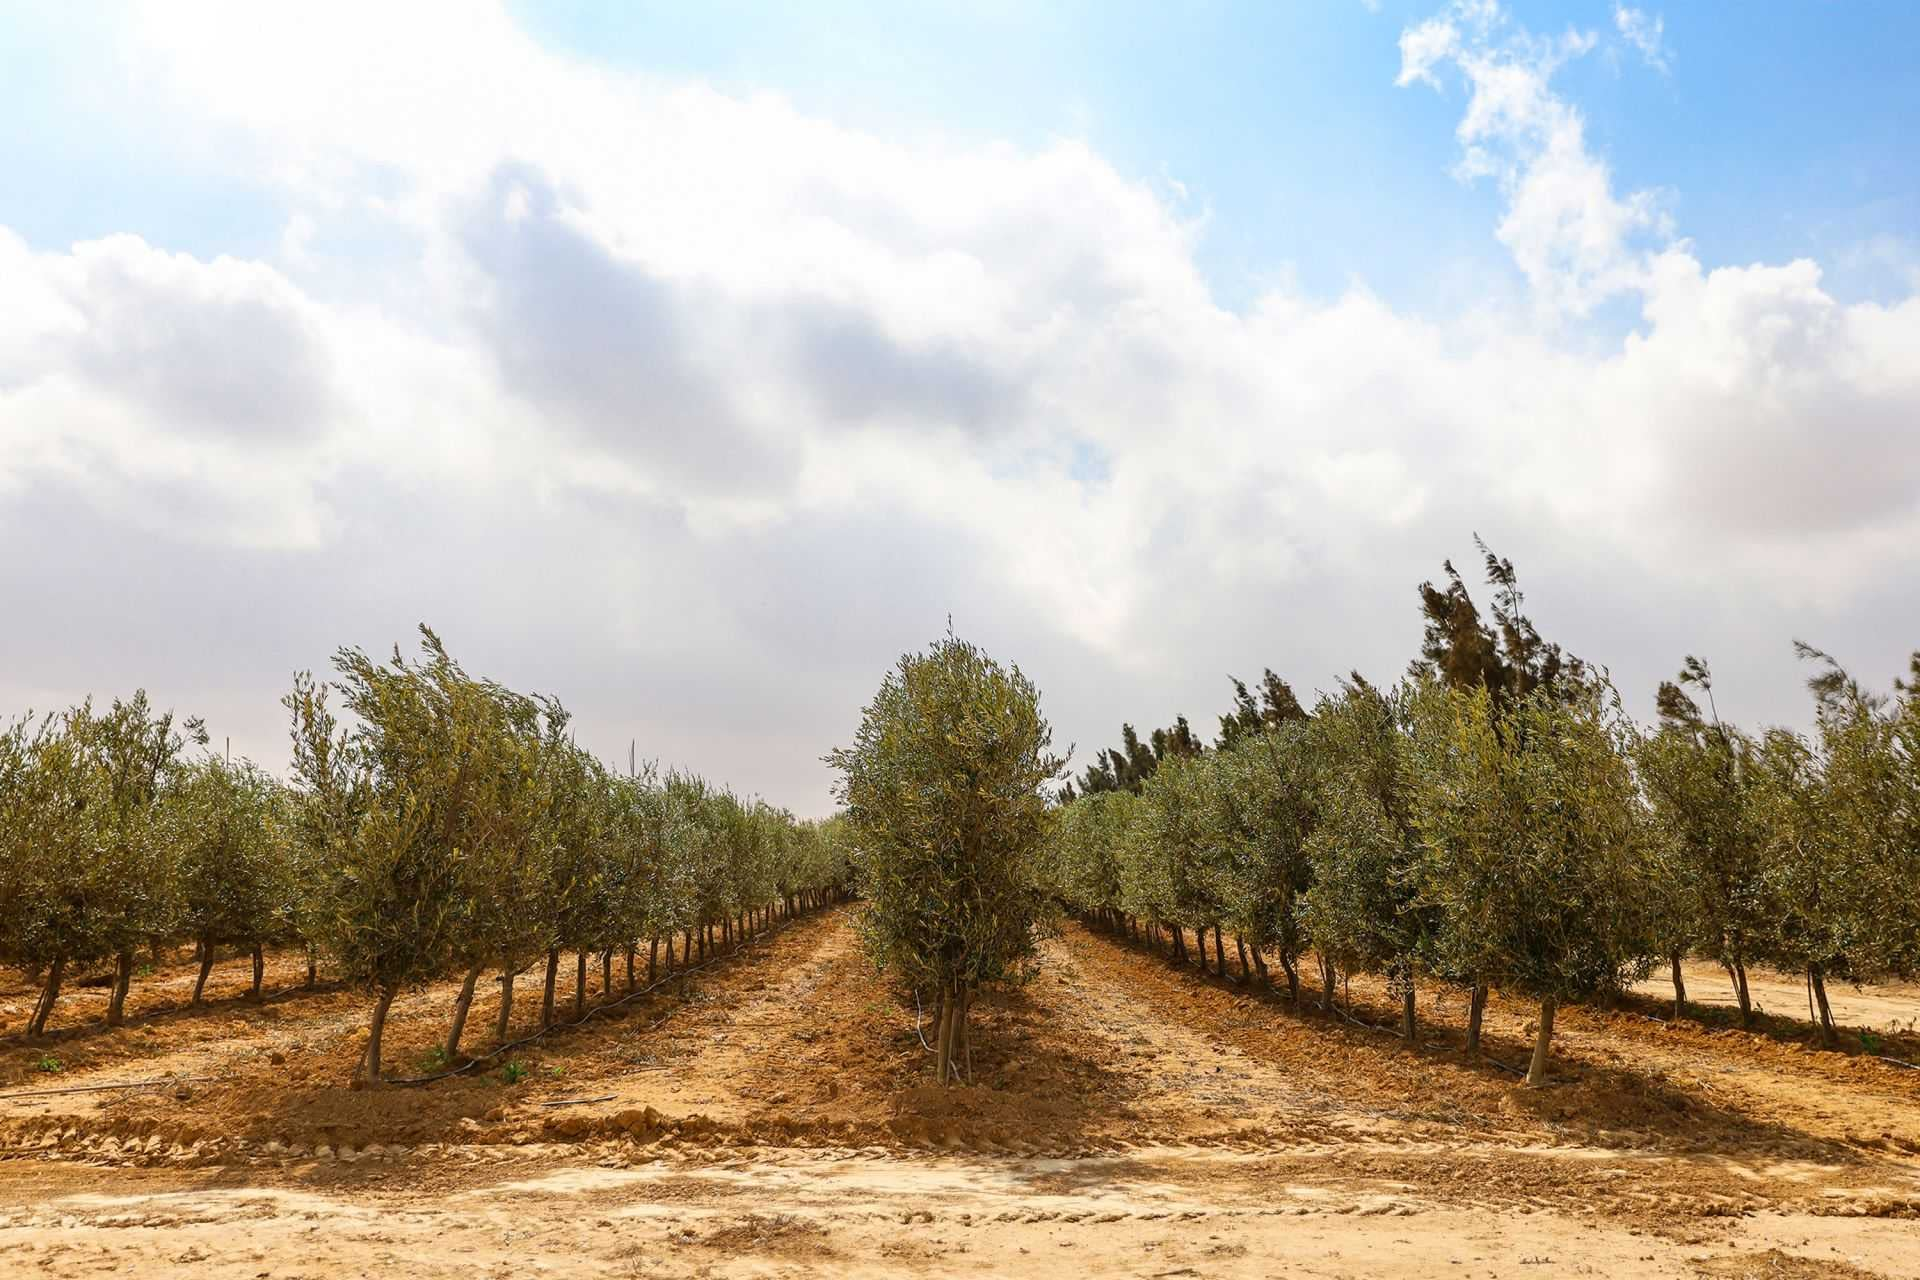 africa-middle-east-competitions-the-best-olive-oils-jordanian-producers-celebrate-firstever-wins-at-world-olive-oil-competition-olive-oil-times